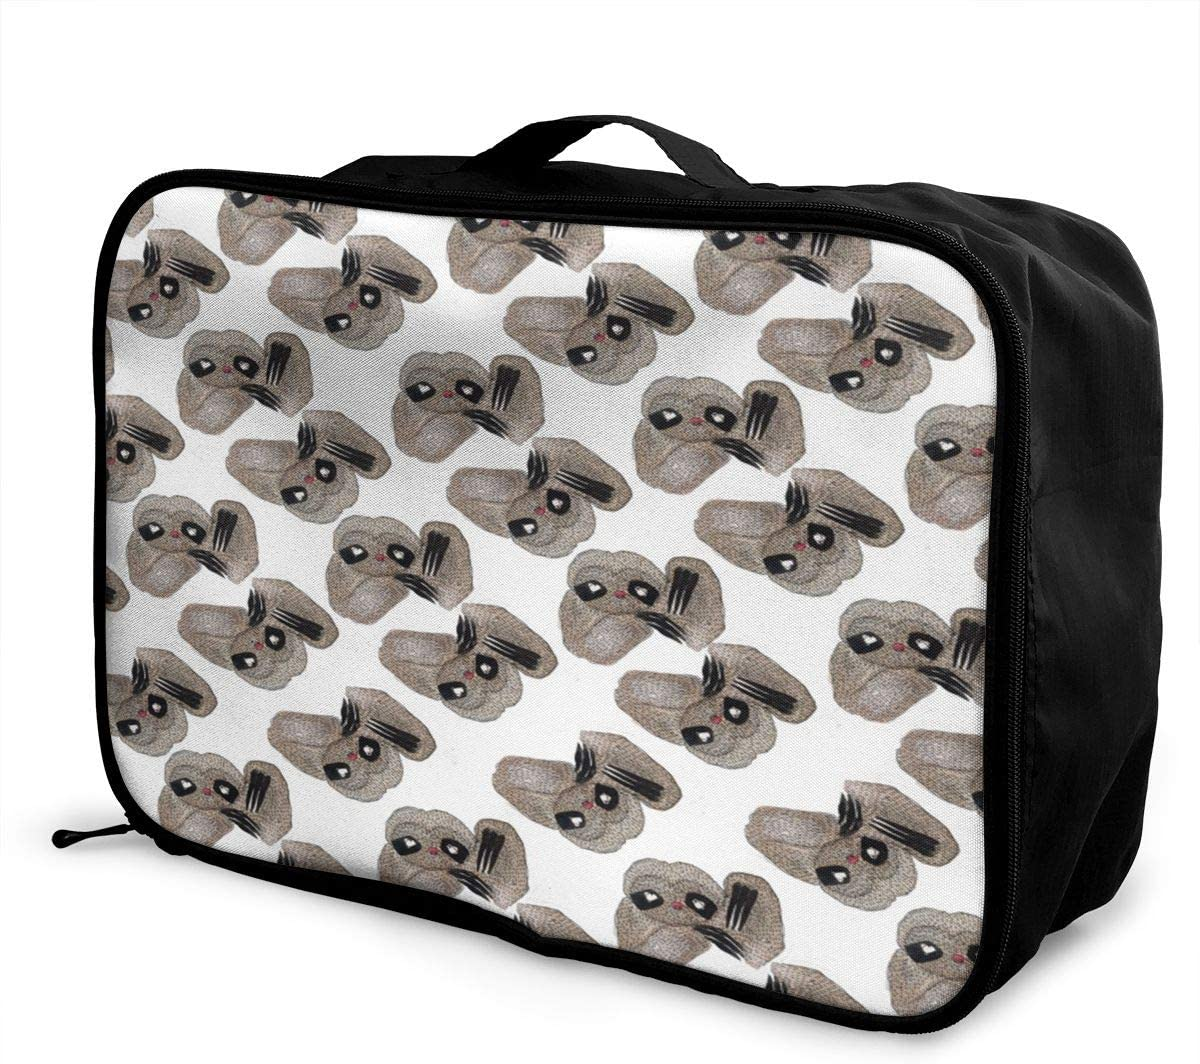 Sloth Pattern Travel Carry-on Luggage Weekender Bag Overnight Tote Flight Duffel In Trolley Handle